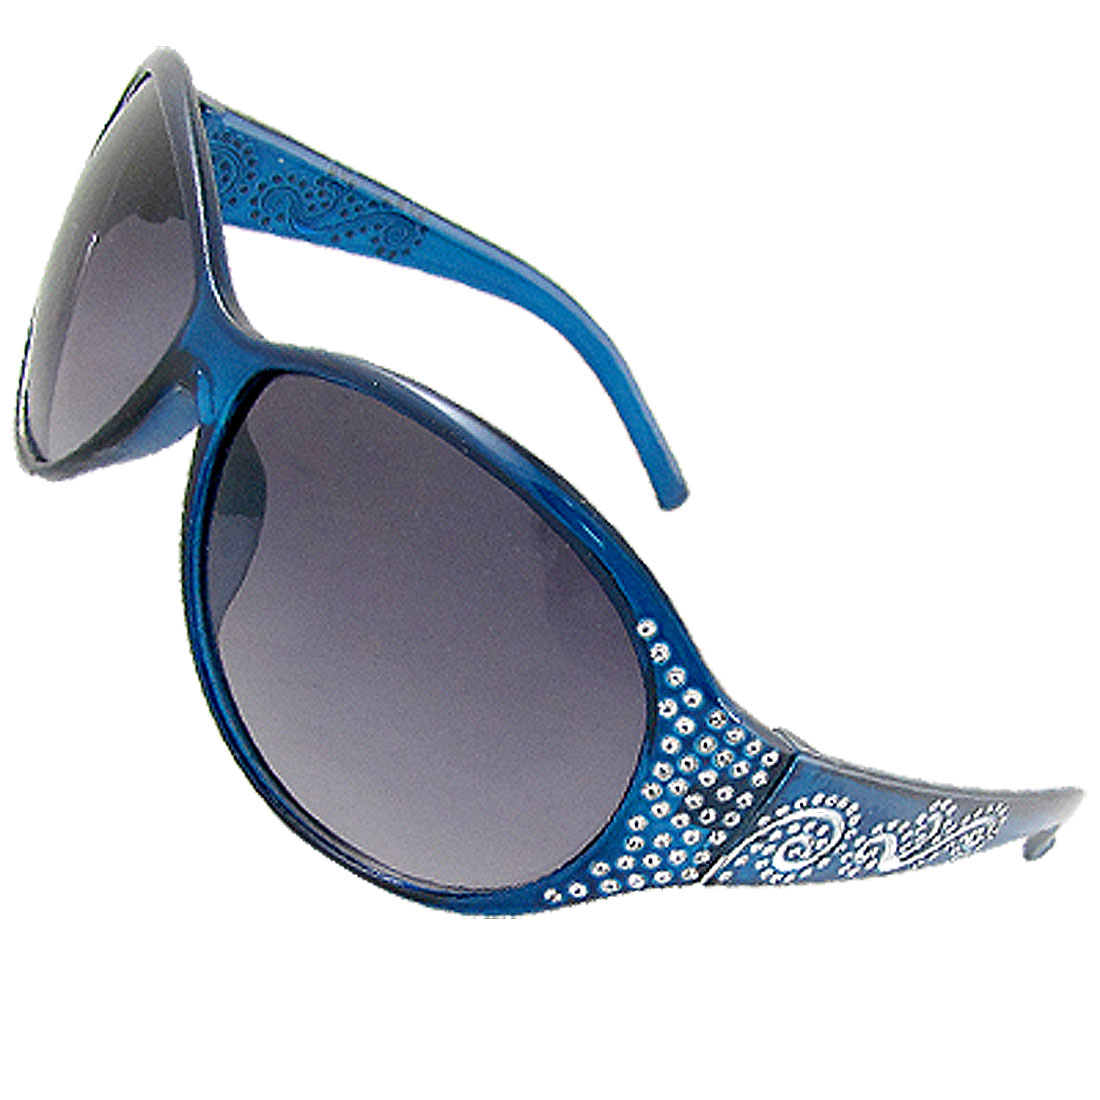 Silver Tone Carved Floral Pattern Oval Lens Plastic Blue Sunglasses for Women